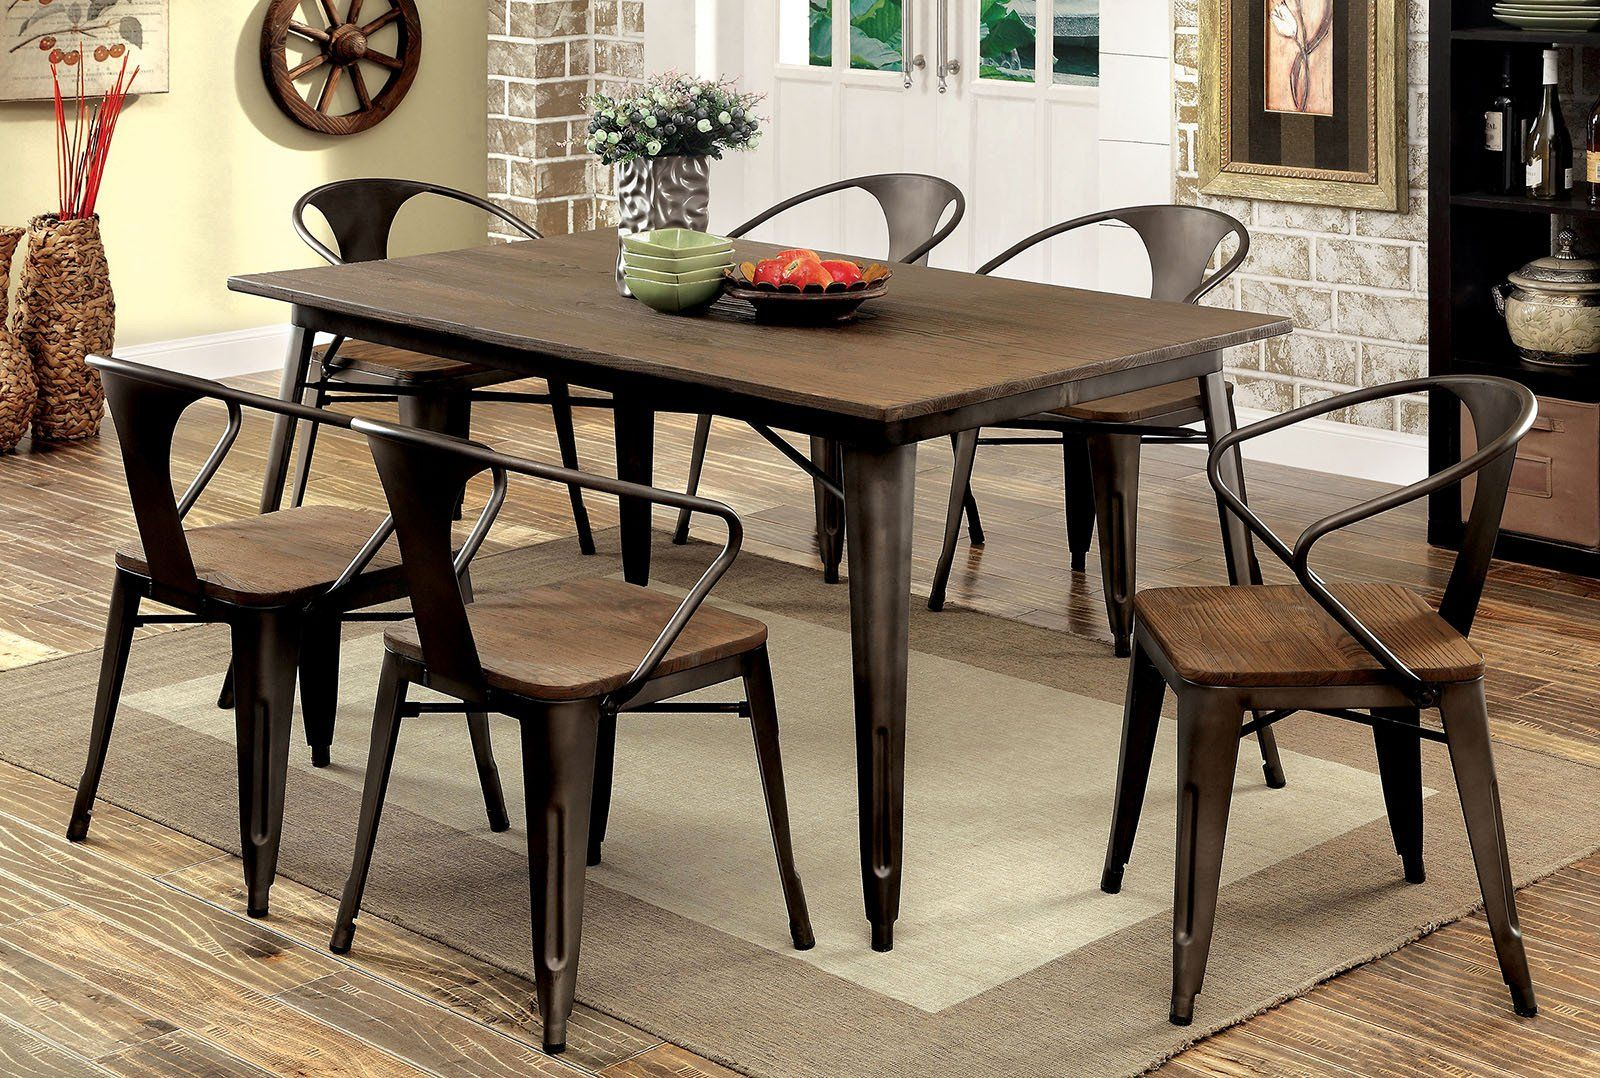 Delightful Cooper I Industrial Dining Table Set